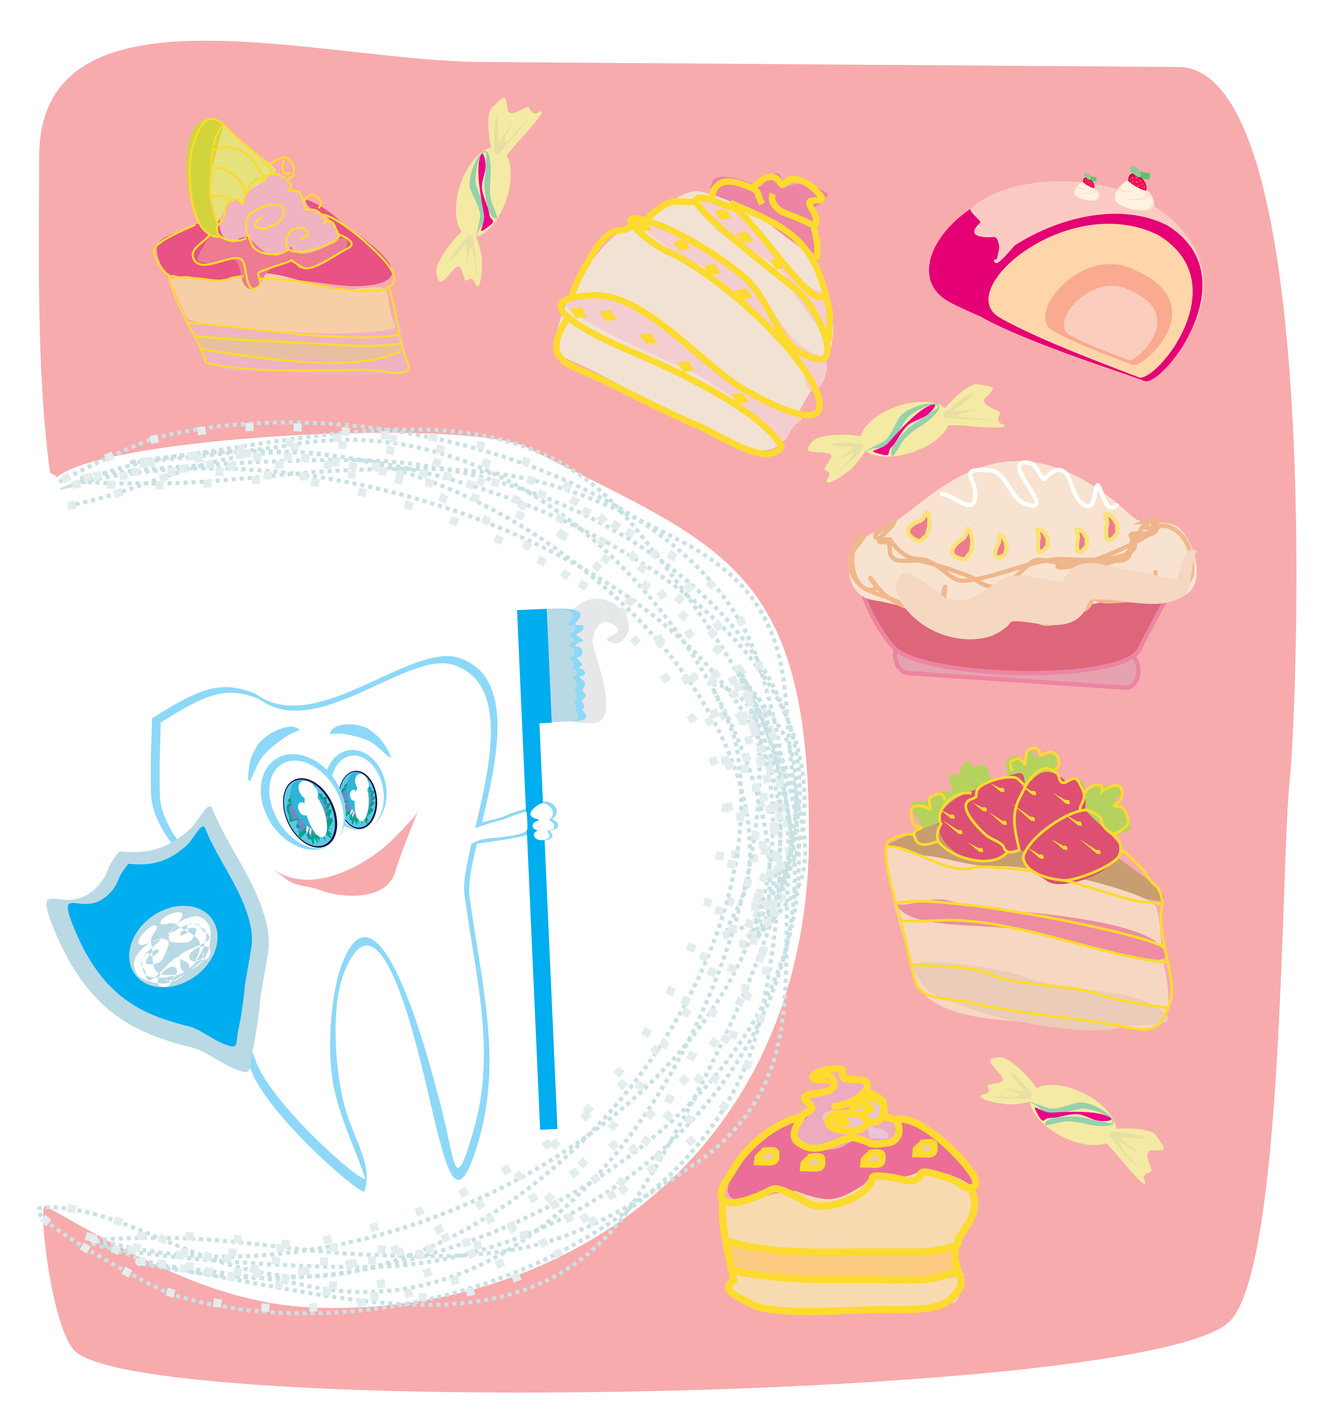 A Funny Teeth Care Poster